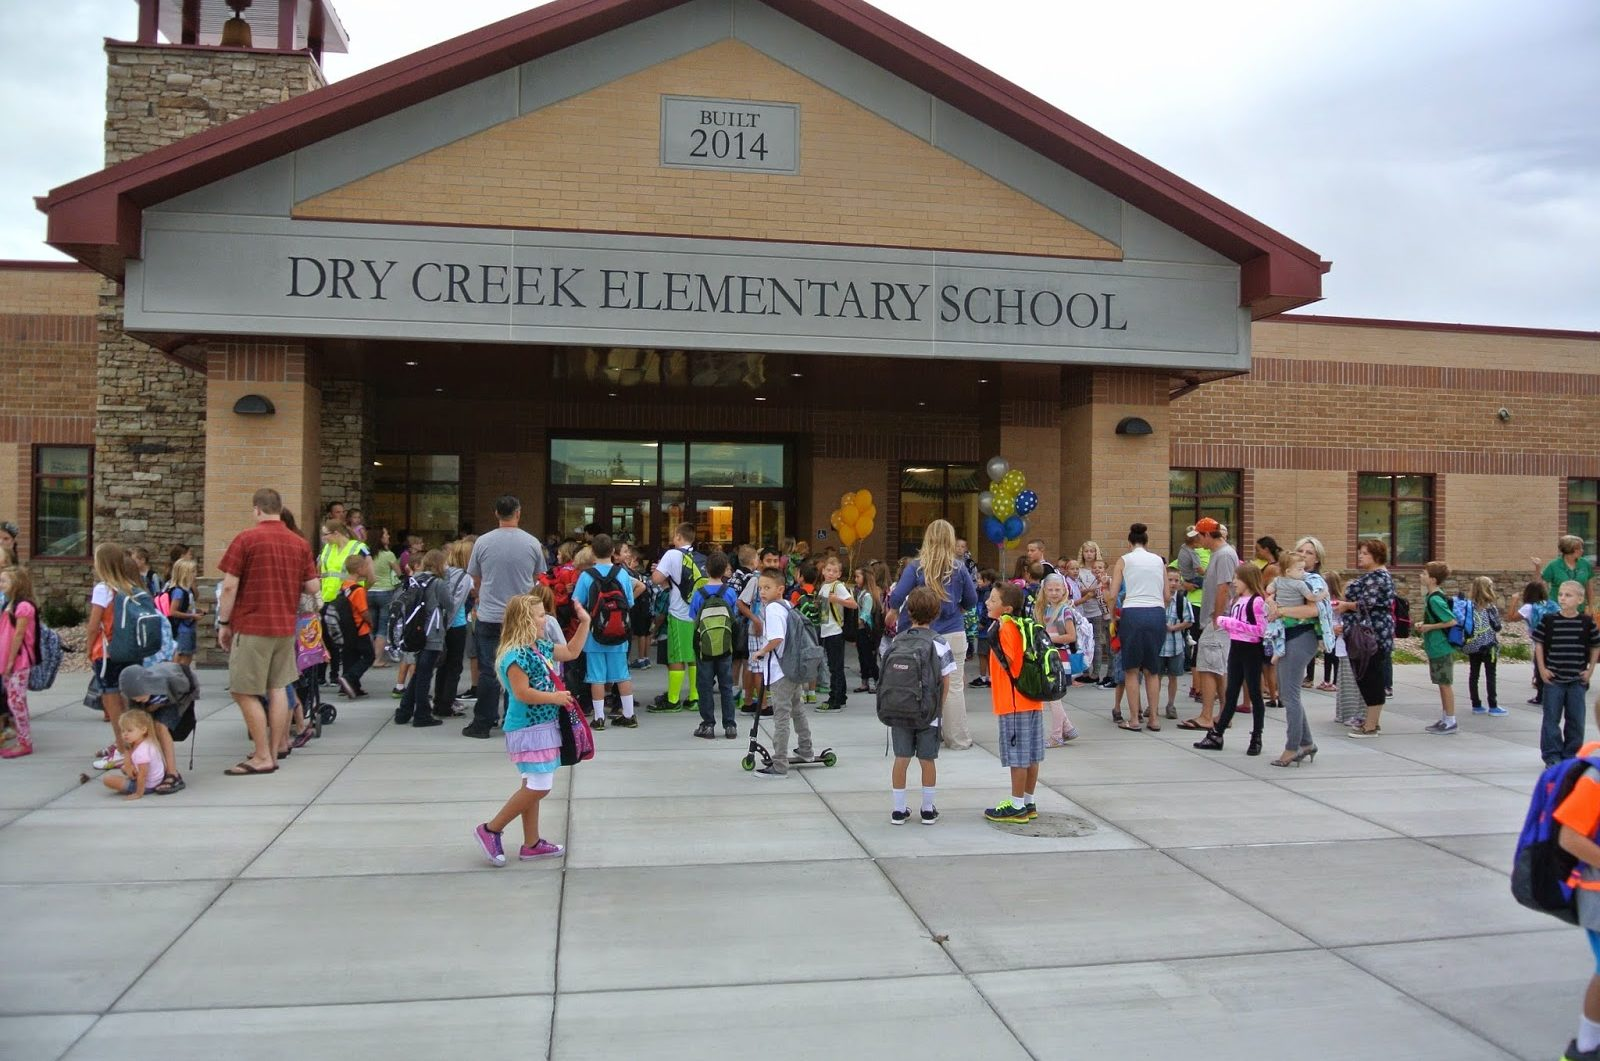 Dry Creek Elementary School, Lehi, UT